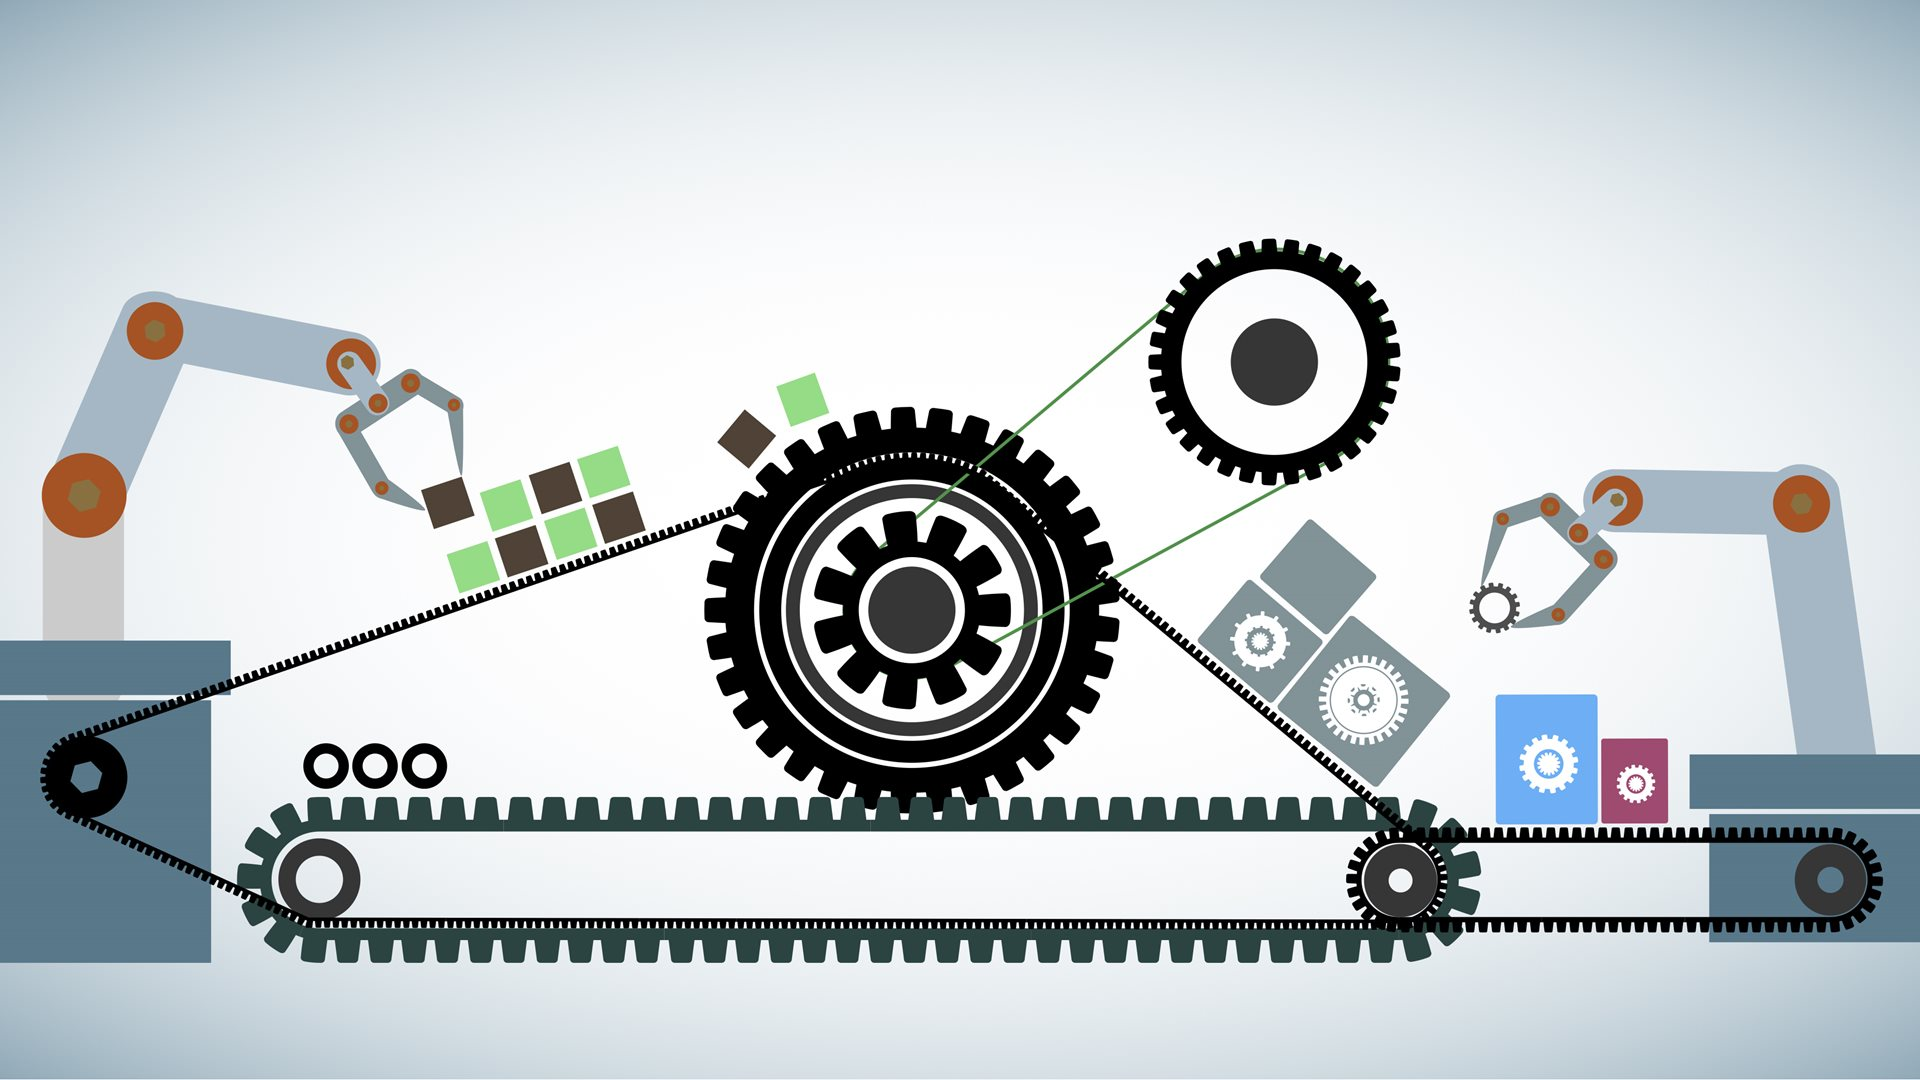 Concept of Agile software development methodology, represents through cogwheels connected with cog belt.